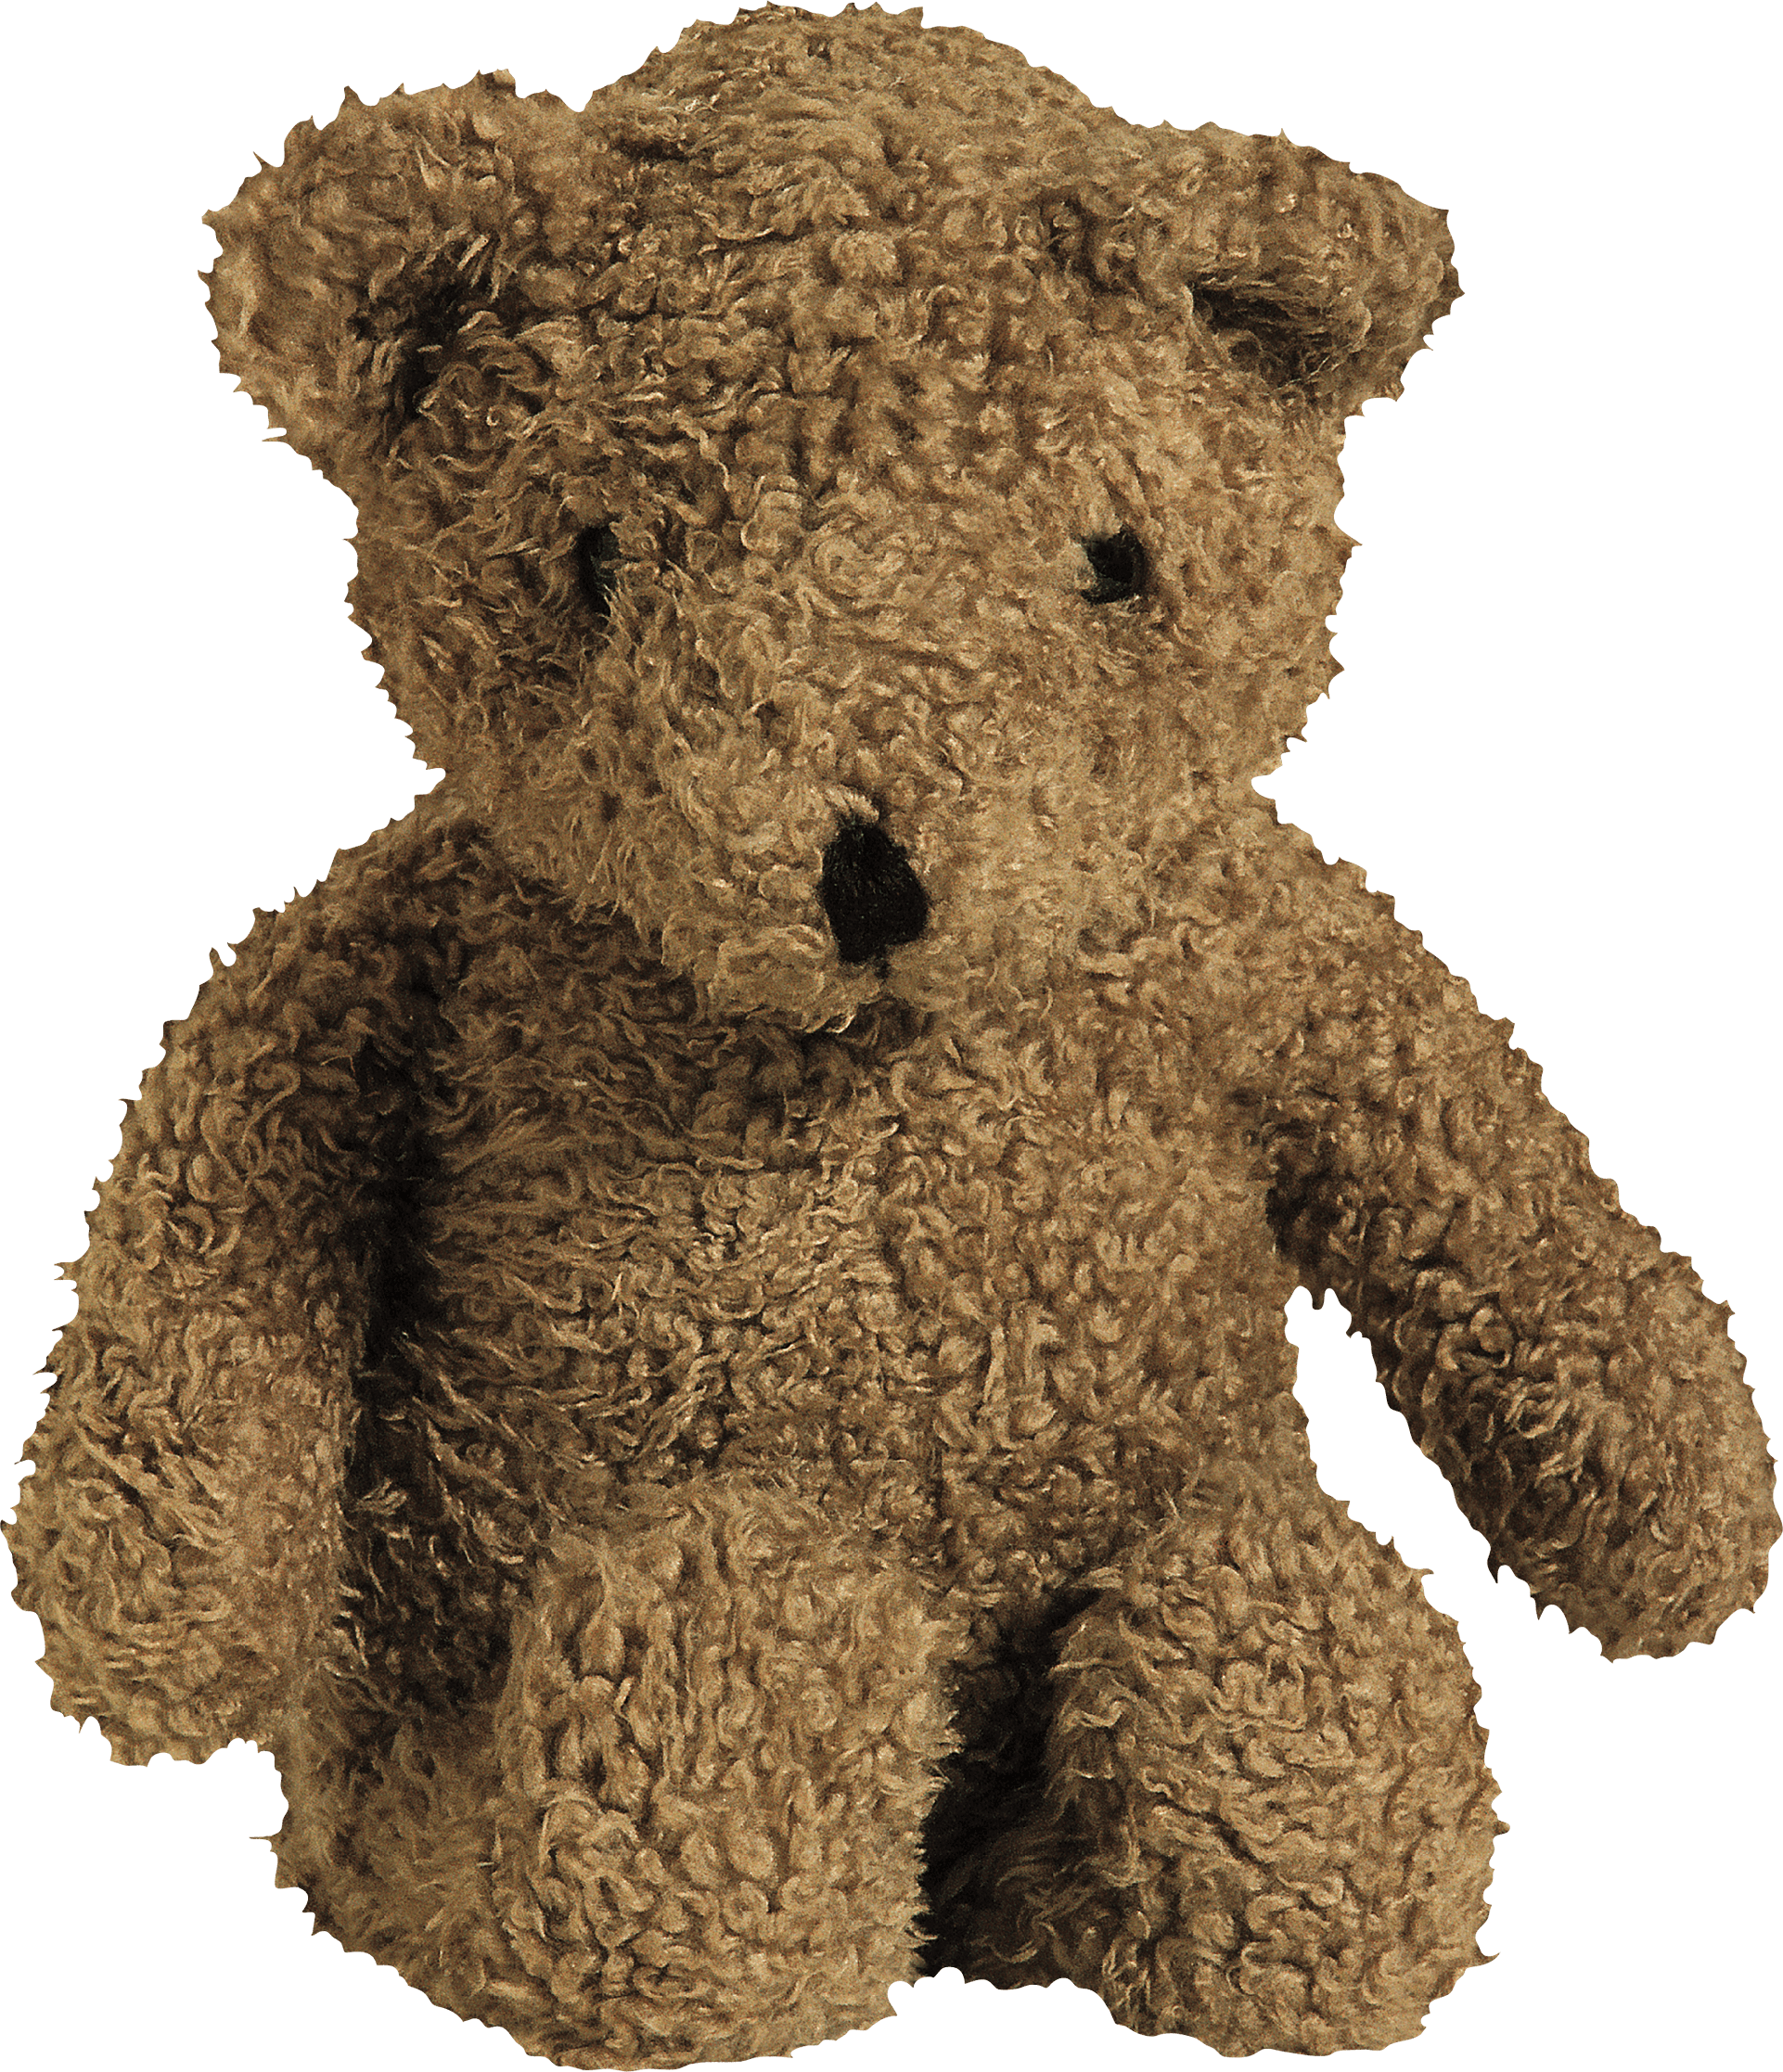 Zombies teddy bear png. Download toy image hq